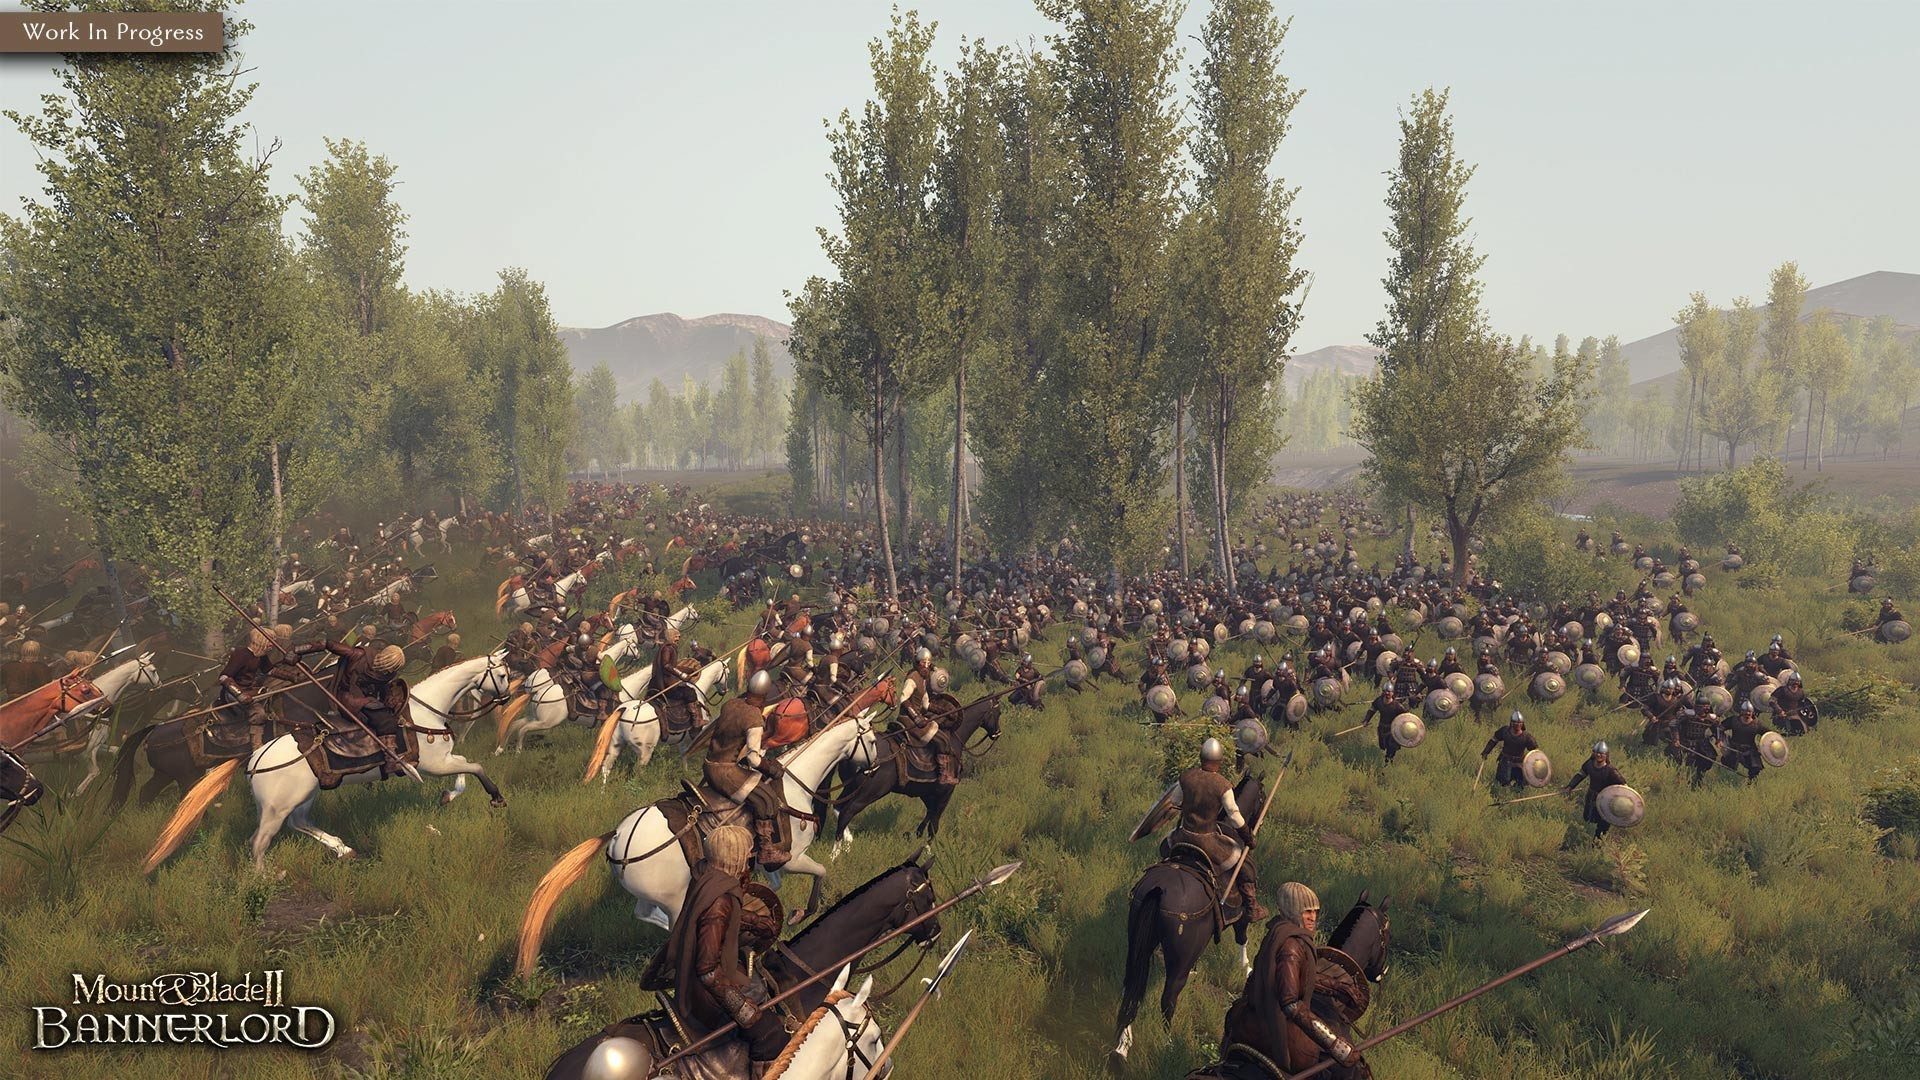 Mount & Blade II: Bannerlord Release Date- Realistic Economy With Breathtaking Battles